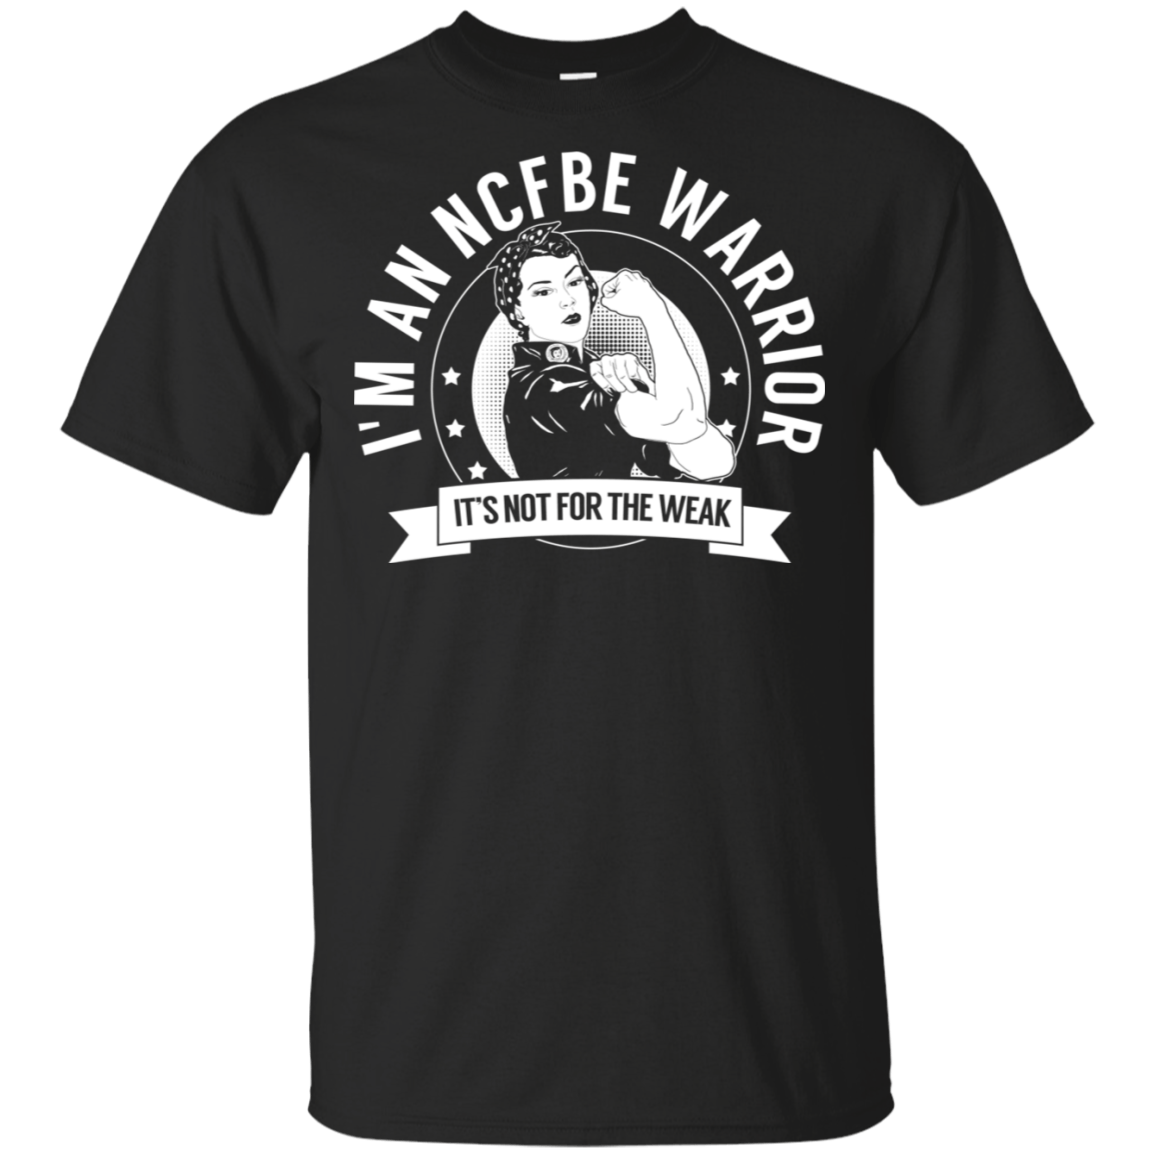 Non-cystic fibrosis bronchiectasis -  NCFBE Warrior NFTW Cotton Unisex Shirt - The Unchargeables